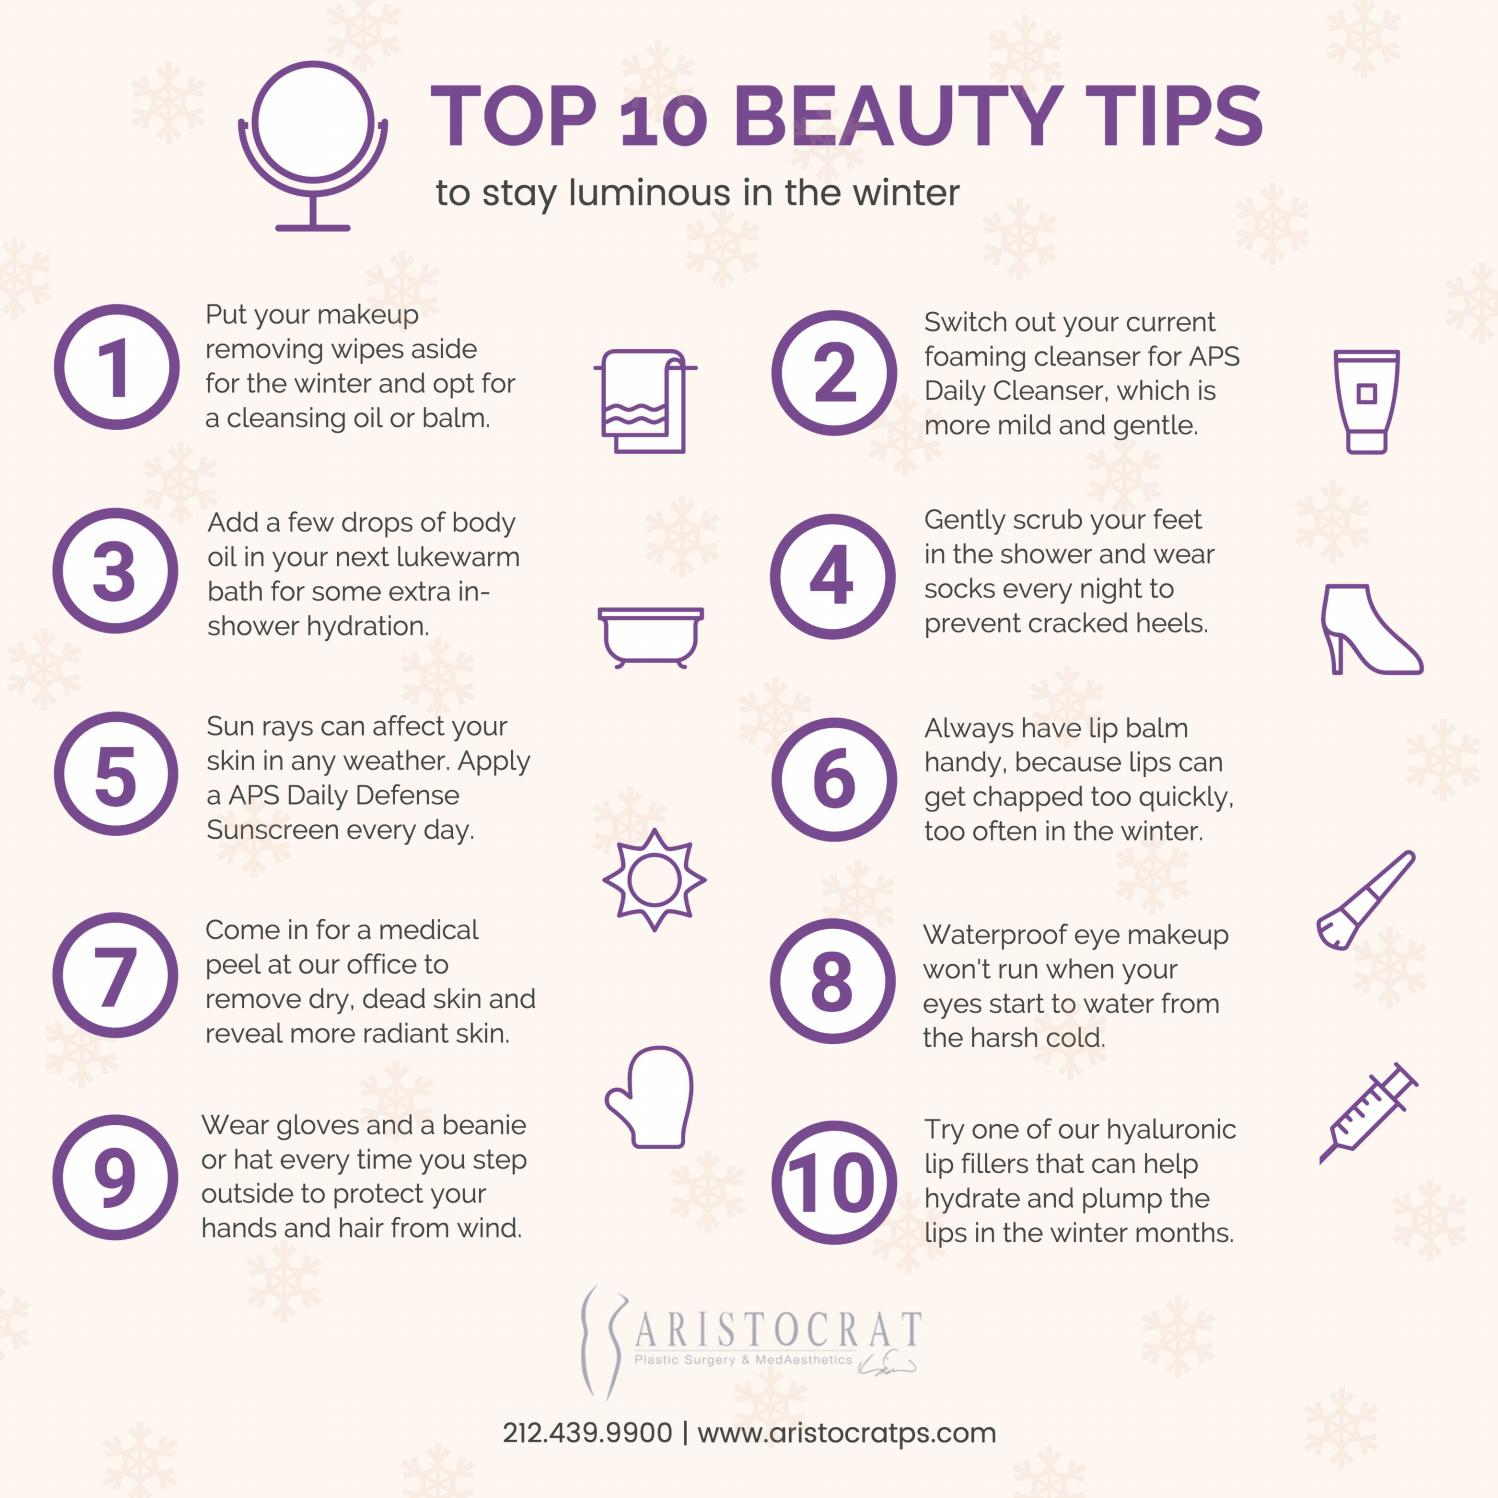 Top 12 beauty tips to stay luminous in the winter by Amelia Kelly